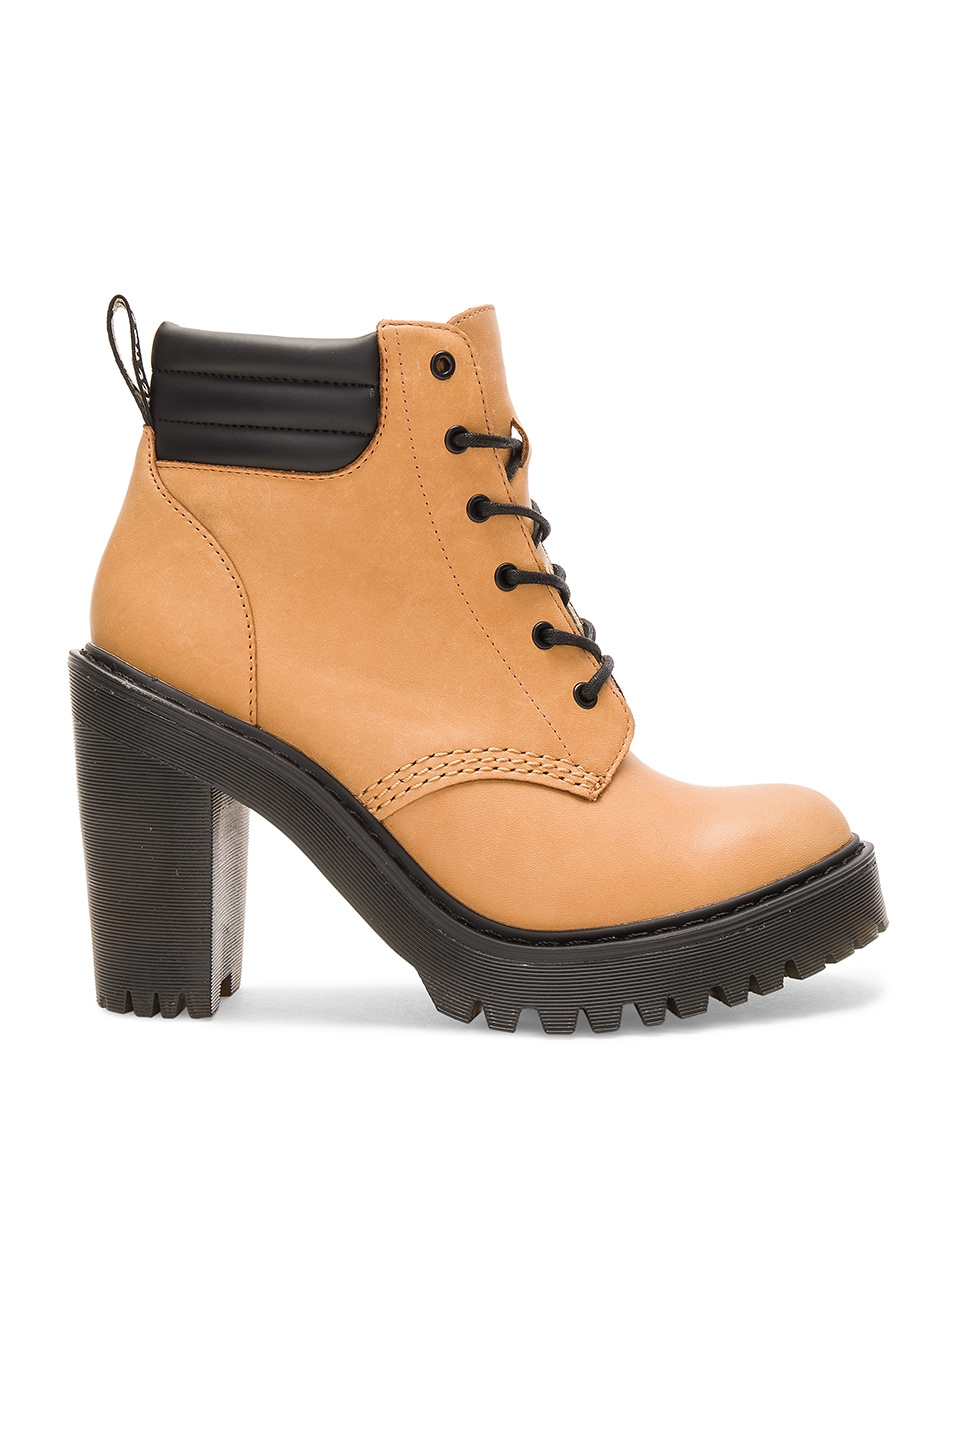 Dr. Martens Persephone Padded Collar Boot in Tan & Black